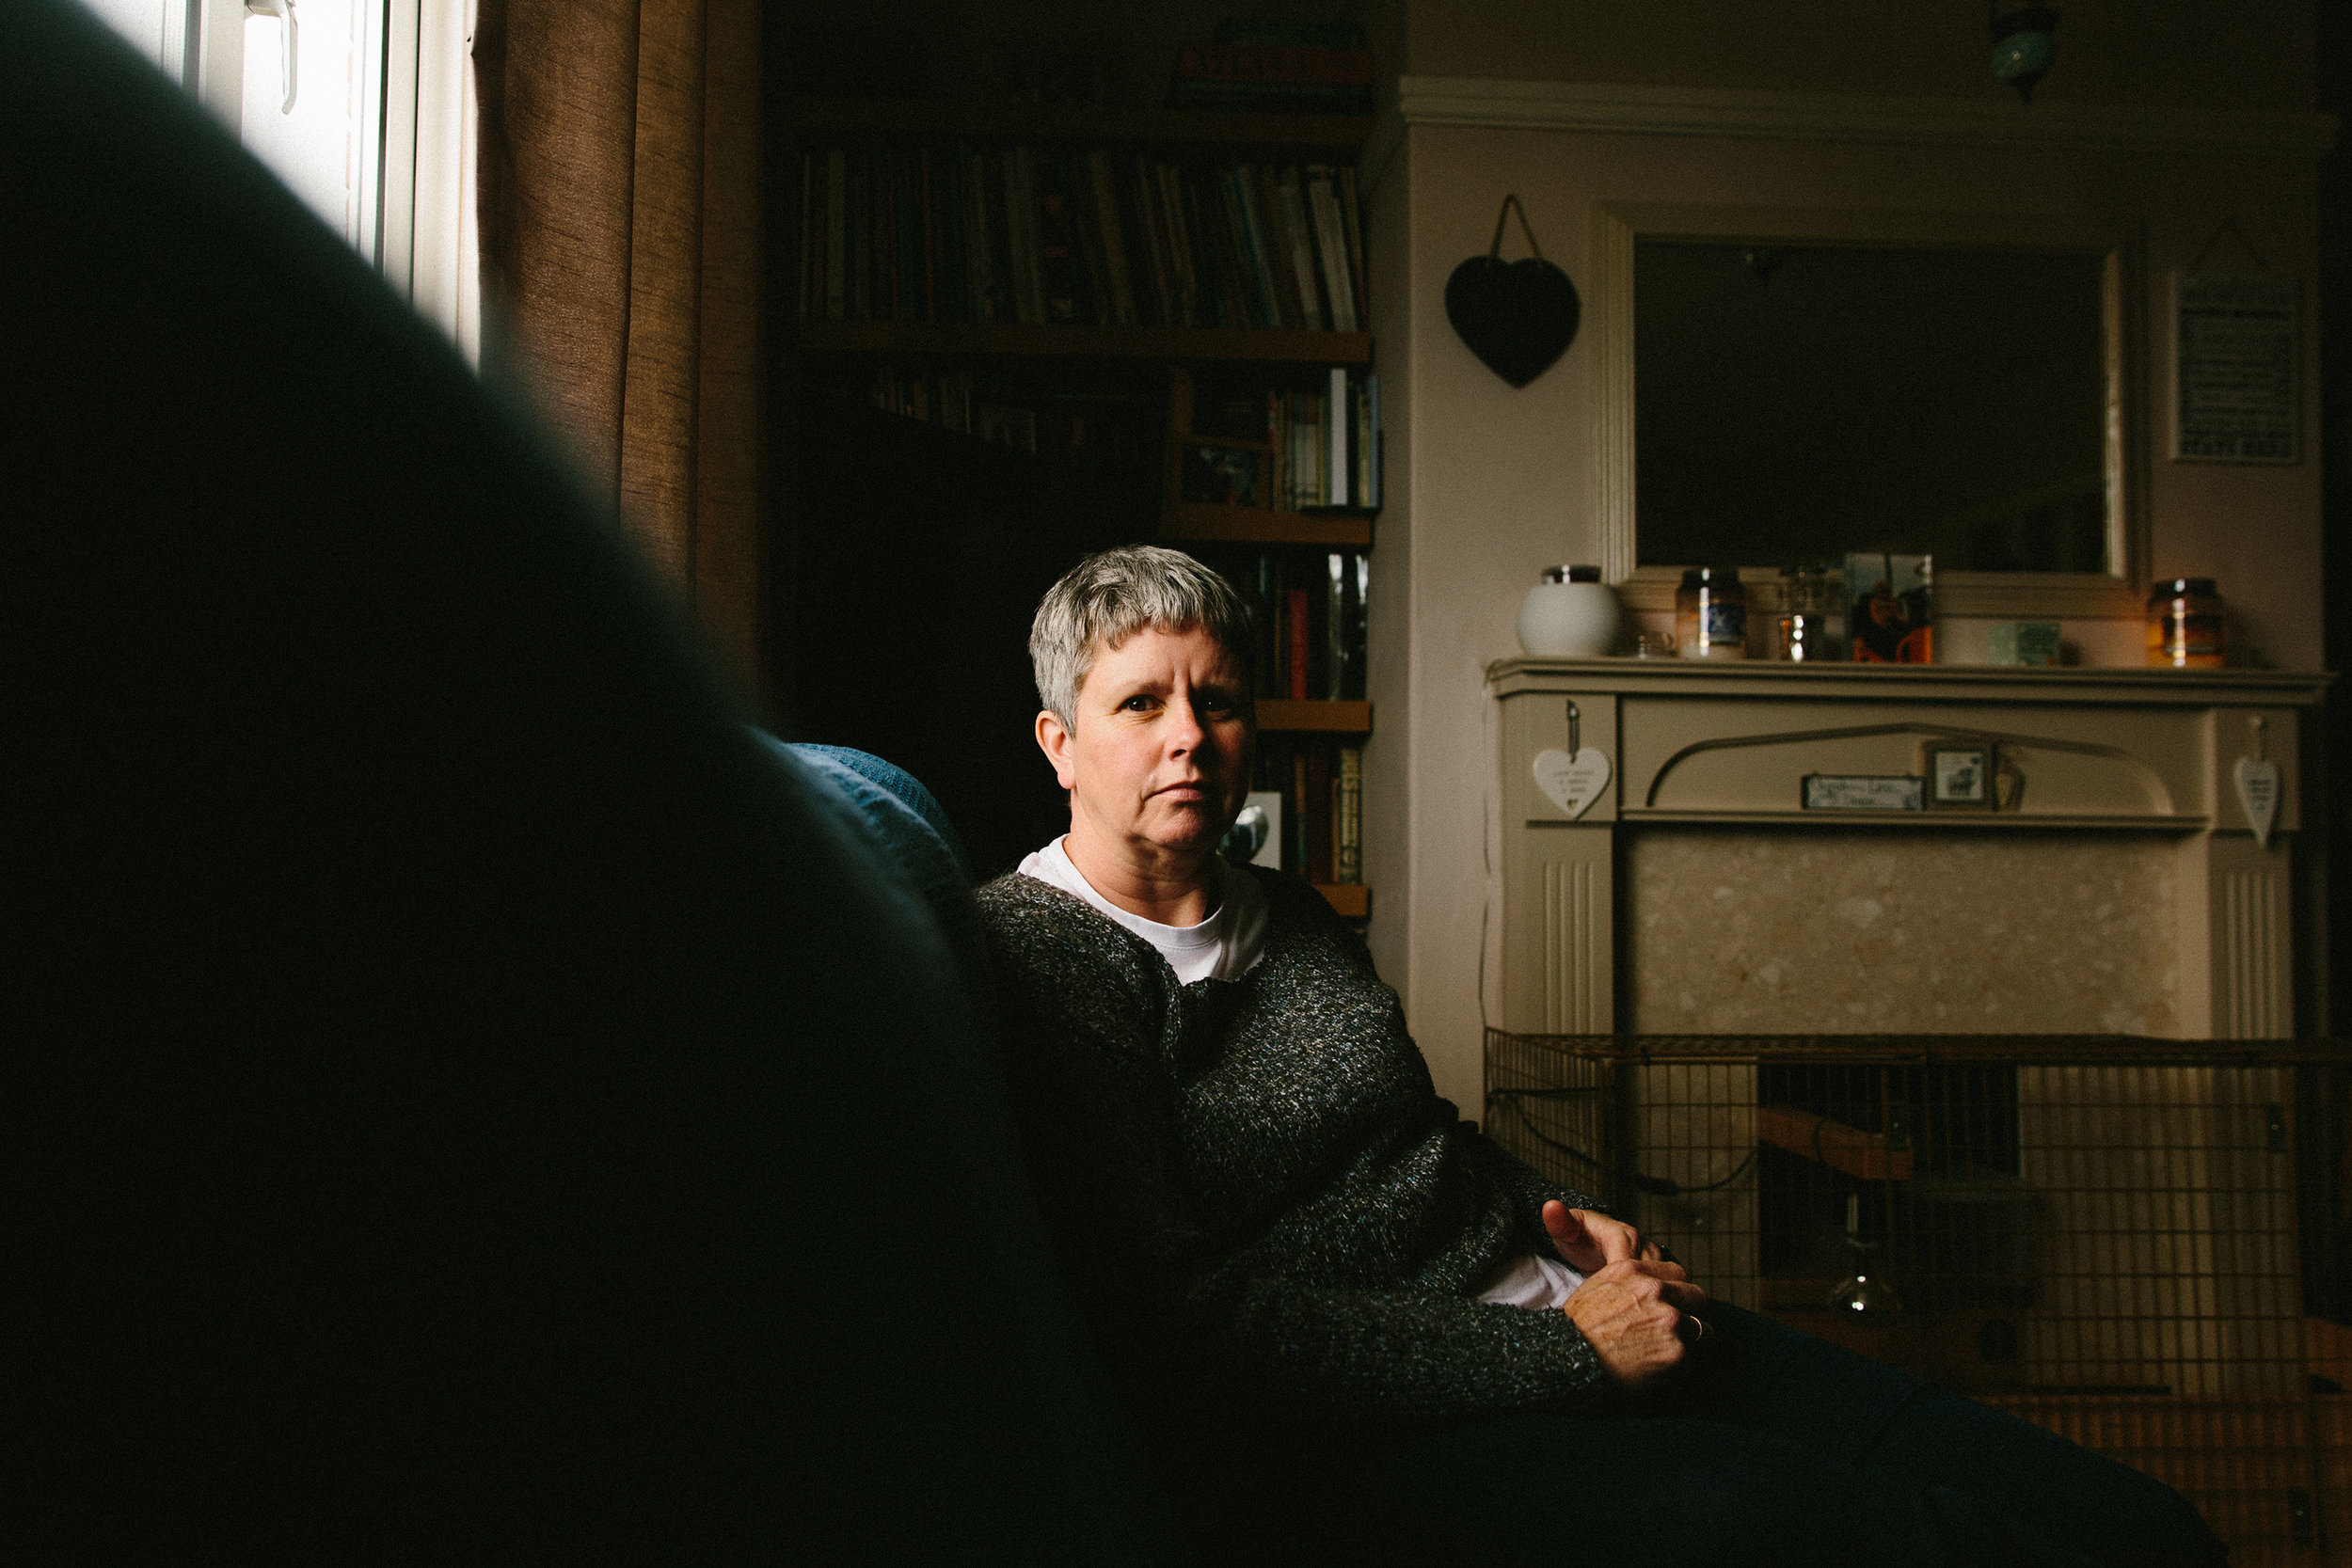 """Jackie Cheetham, from Pickering in North Yorkshire, lives every day of her life in agonising pain. This pain began in 2006, shortly after she was fitted with pelvic mesh as part of a surgical treatment for incontinence. Jackie describes the sensation as """"being cut inside by a cheese wire"""". For months doctors dismissed her pain as psychosomatic and she attempted to take her own life. One in 20 women who responded to a recent survey by the 'Sling The Mesh' campaign group say they have attempted suicide, with many more having suicidal thoughts"""